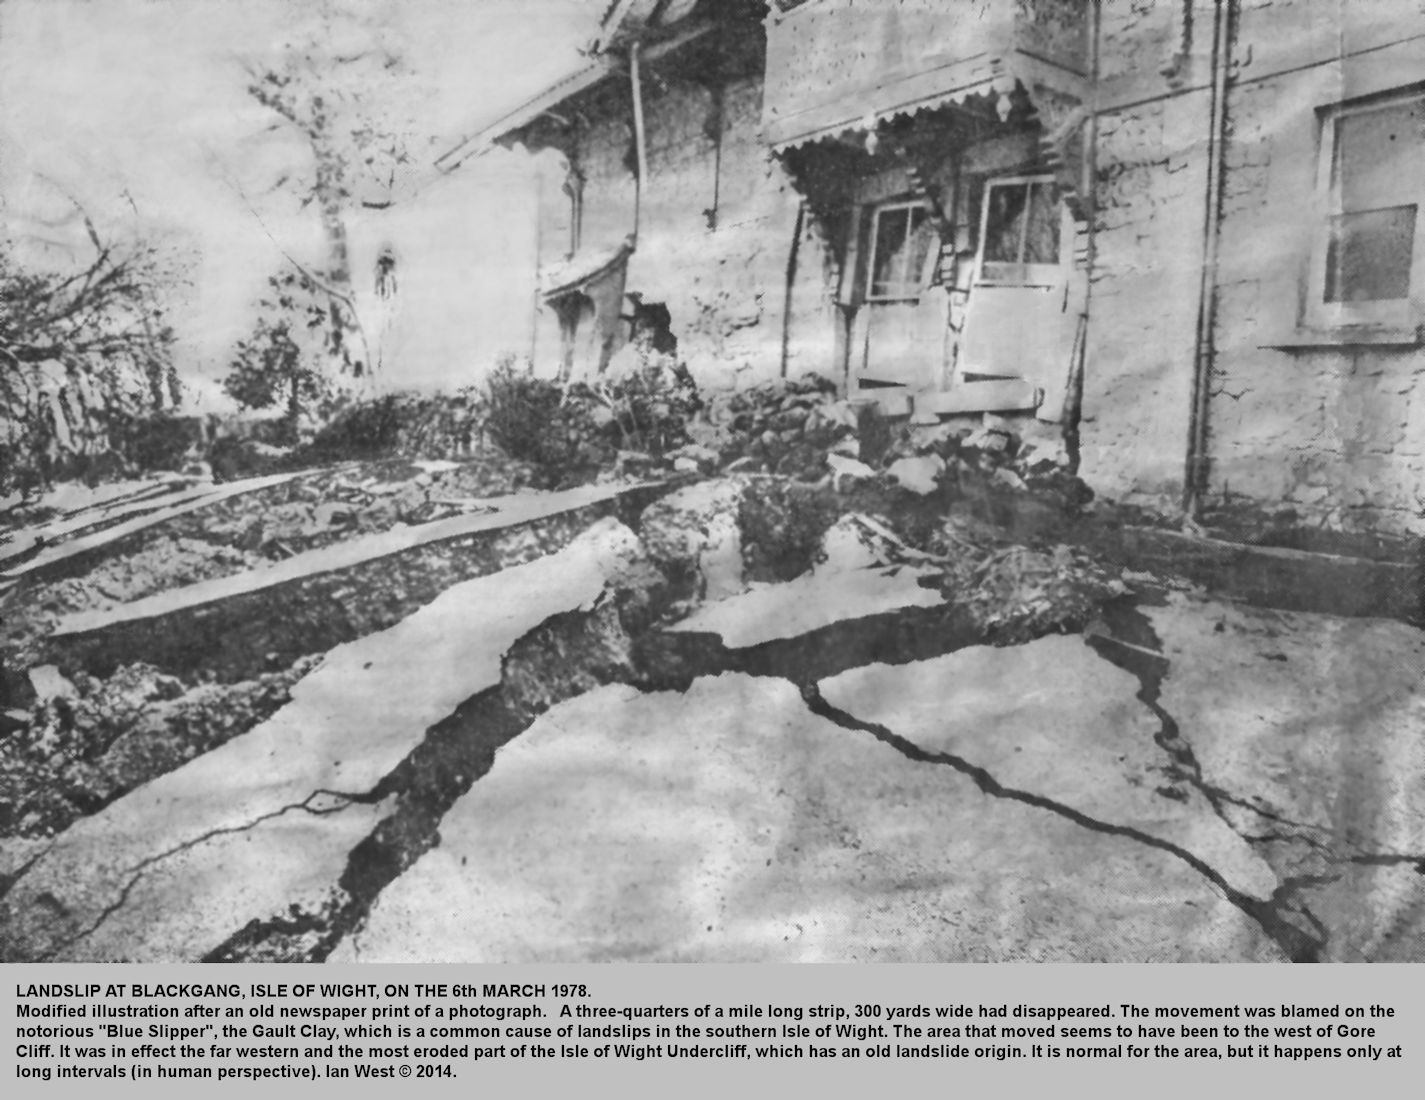 Effects on a house of a landslip at Blackgang Chine, Isle of Wight, 6th March 1978, from newspaper report